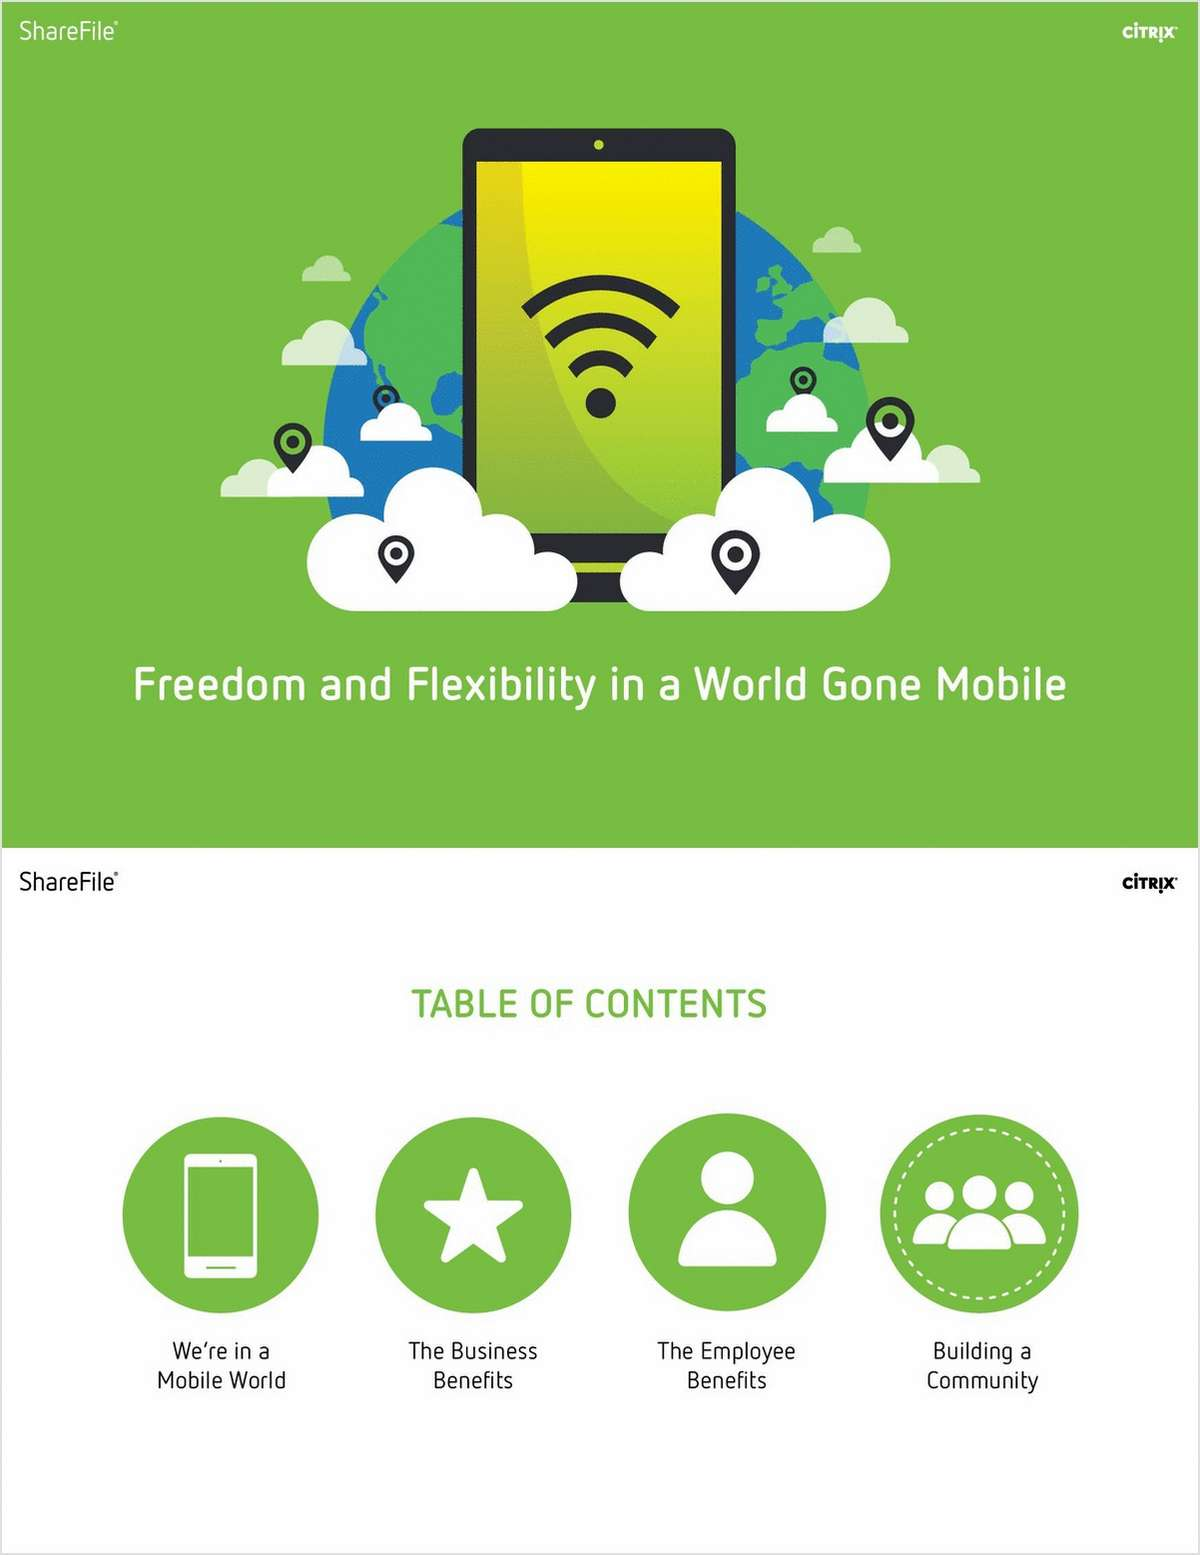 Freedom and Flexibility in a Healthcare World Gone Mobile